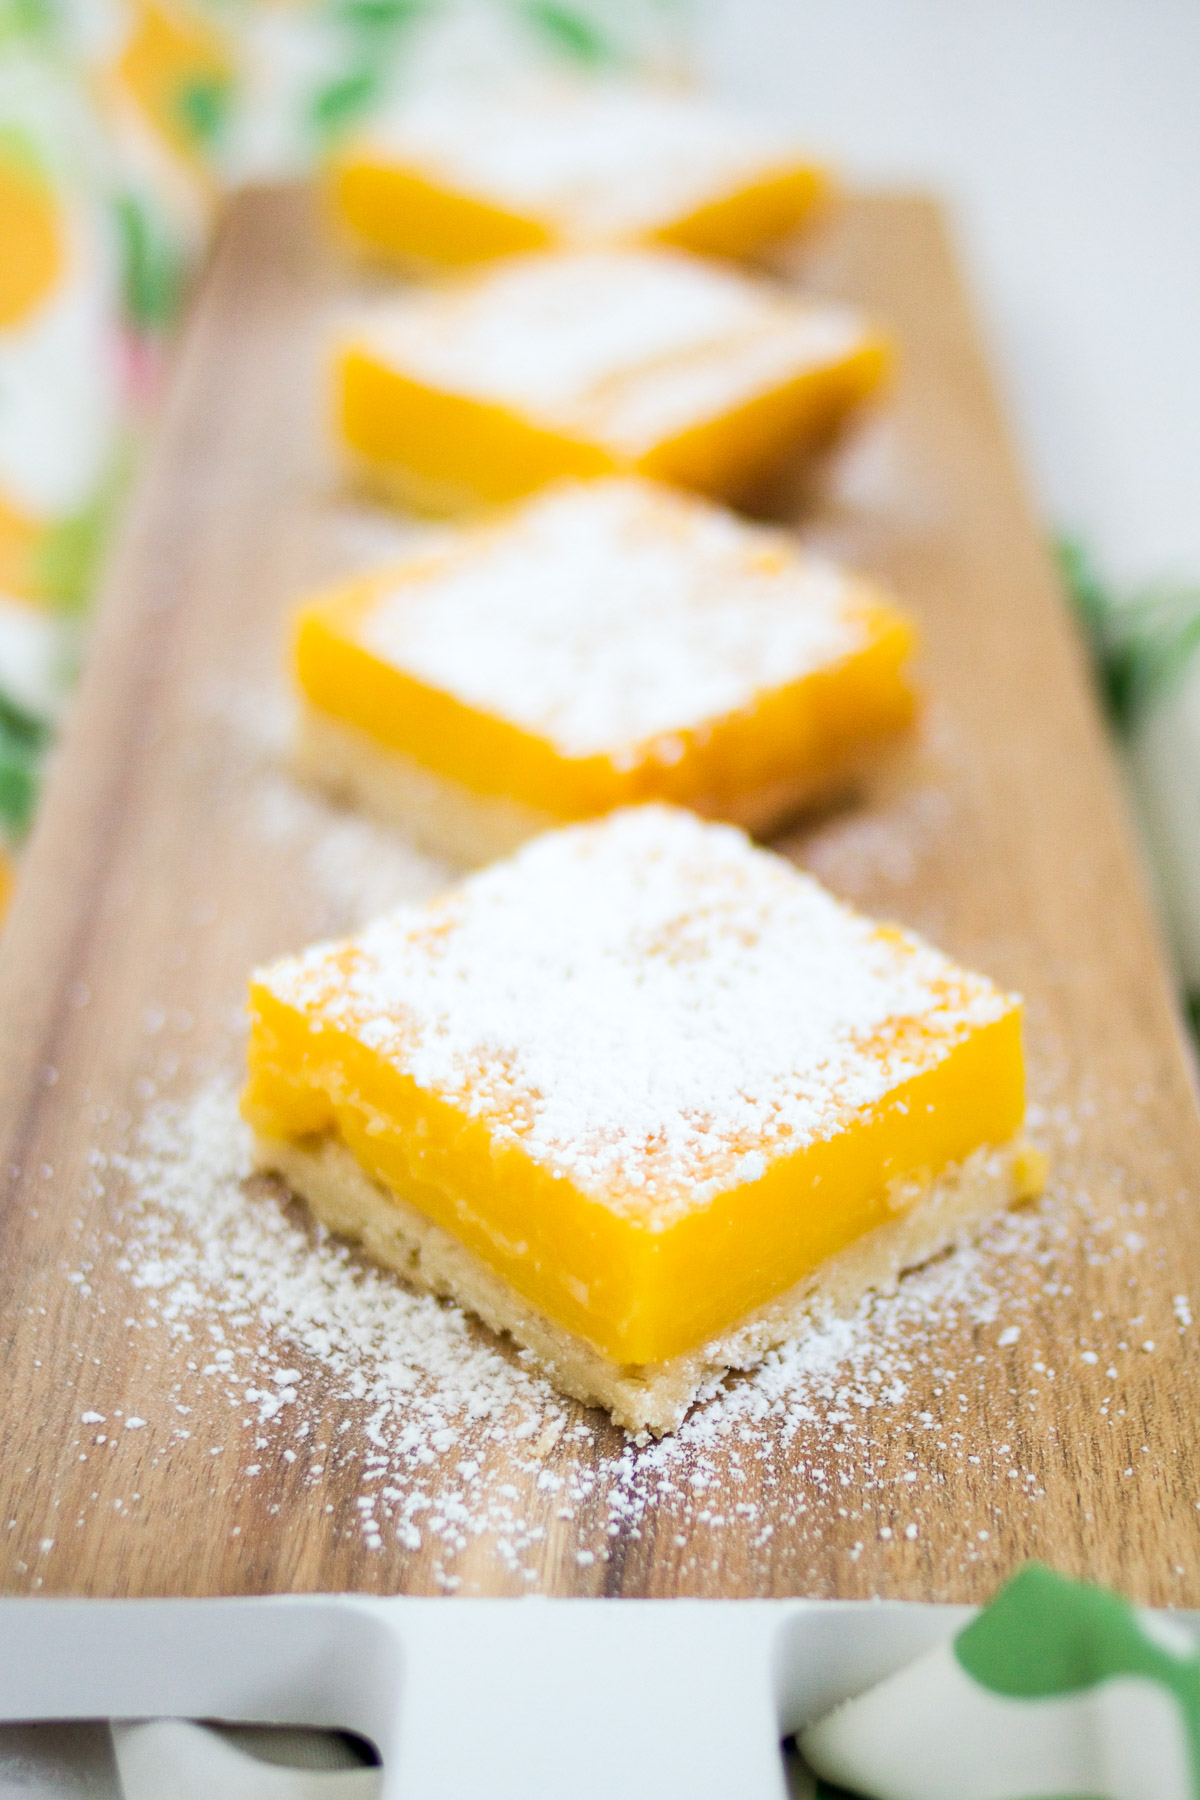 These delicious citrus bars have a tart and tangy layer of homemade lime curd atop a buttery shortbread crust.